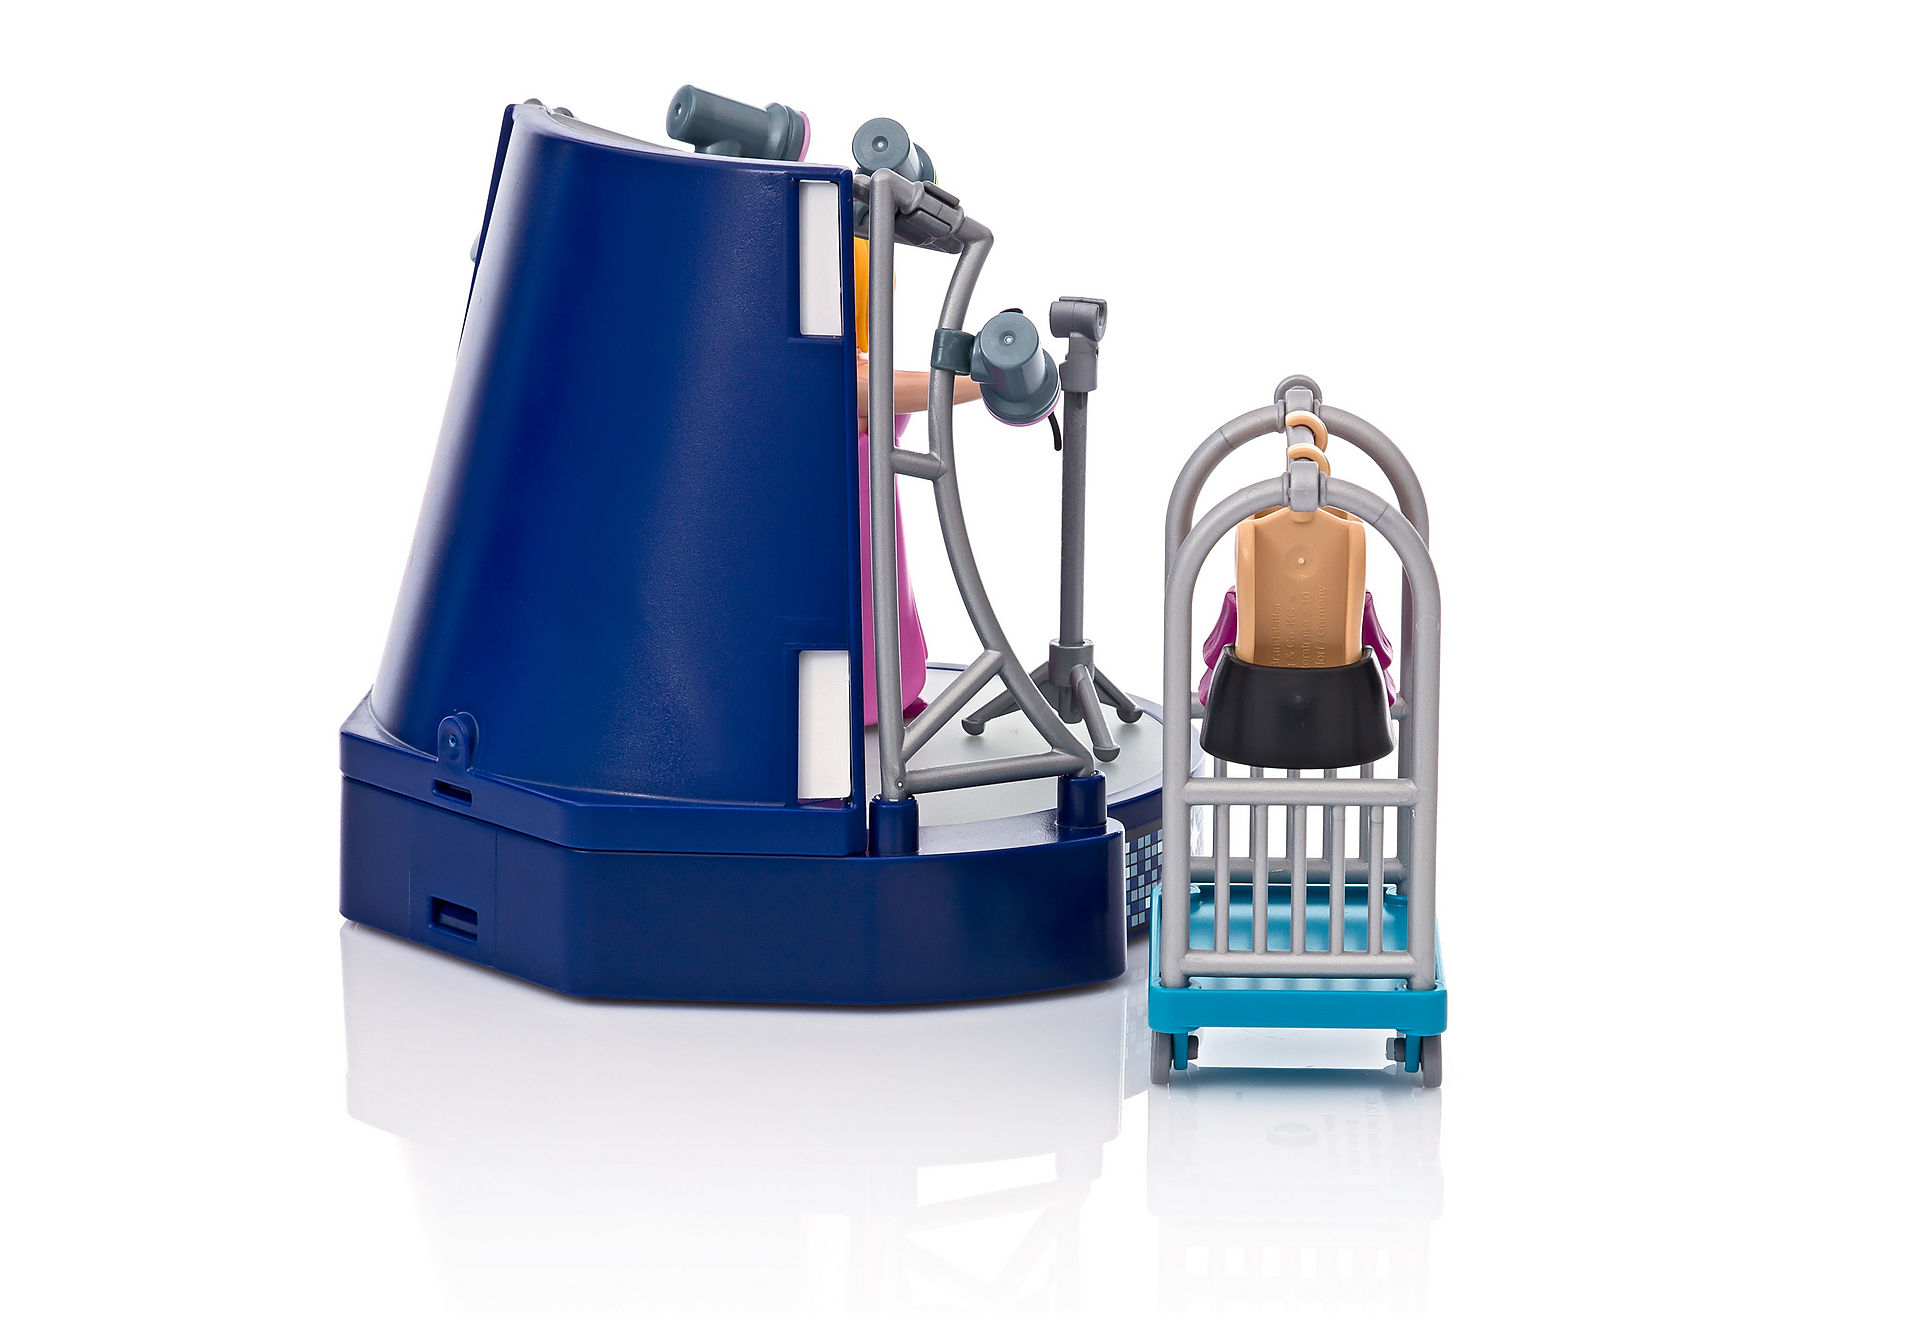 360degree image 27